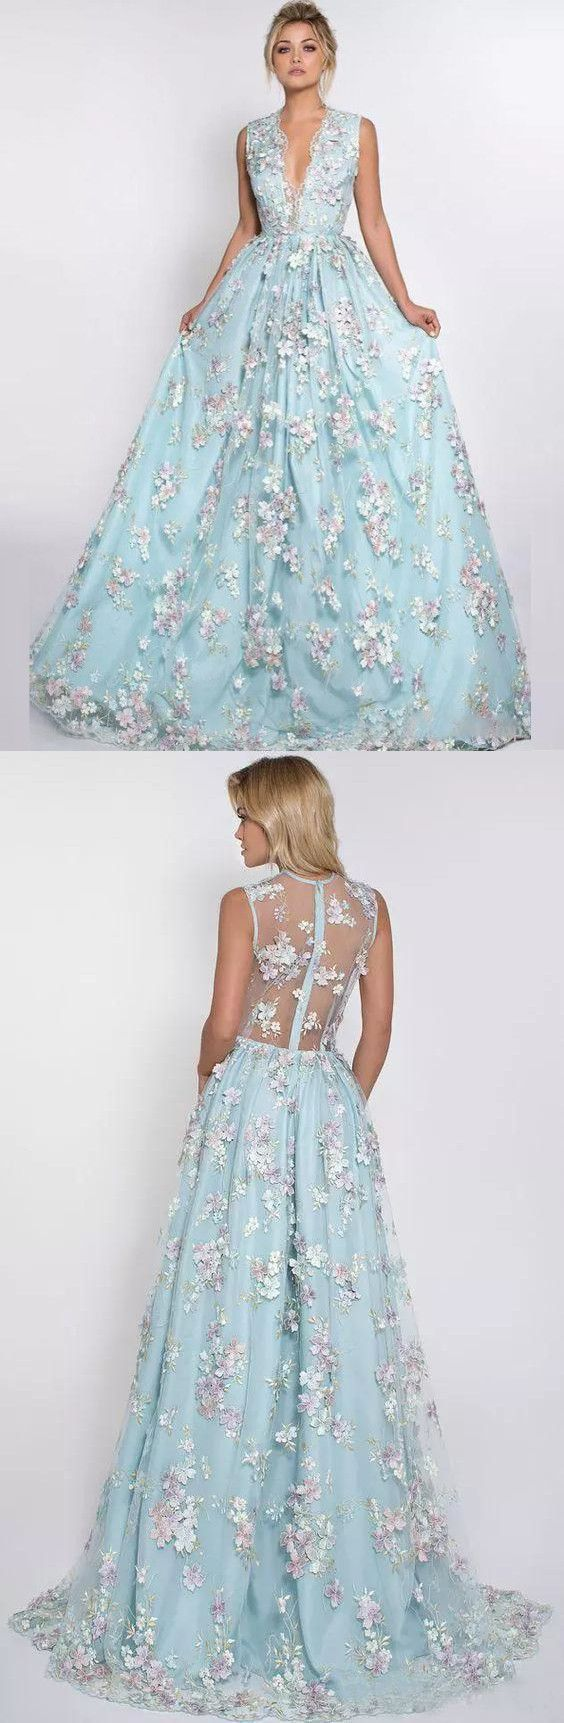 Aline vneck sweep train tulle appliqued prom dresses with flowers